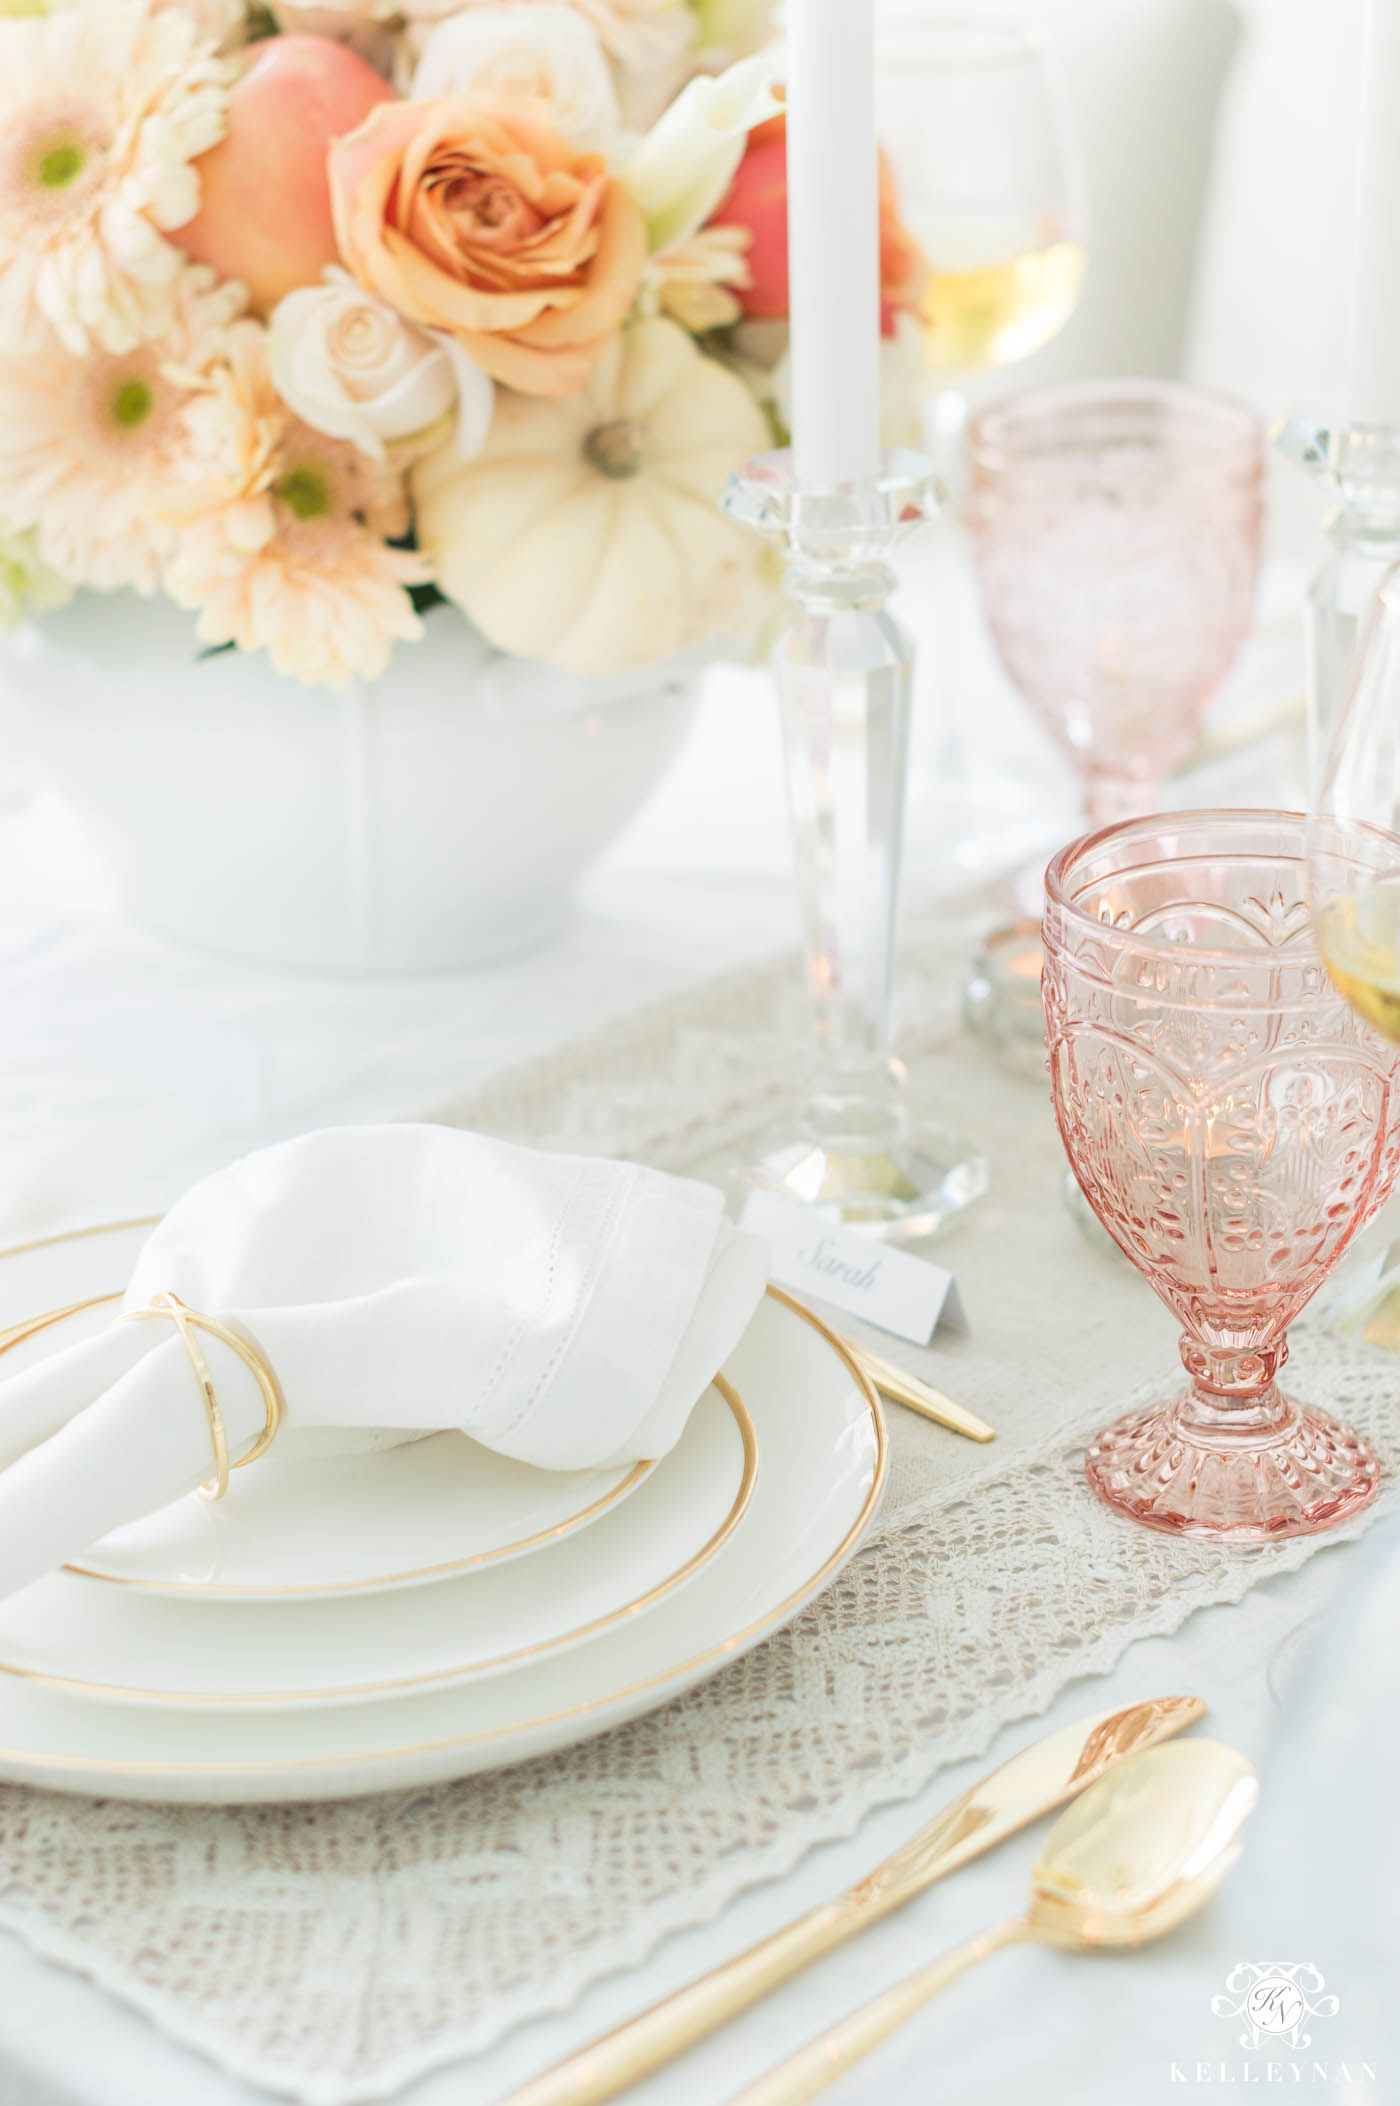 Gold, White, & Pink Thanksgiving Place Settings at Formal Table